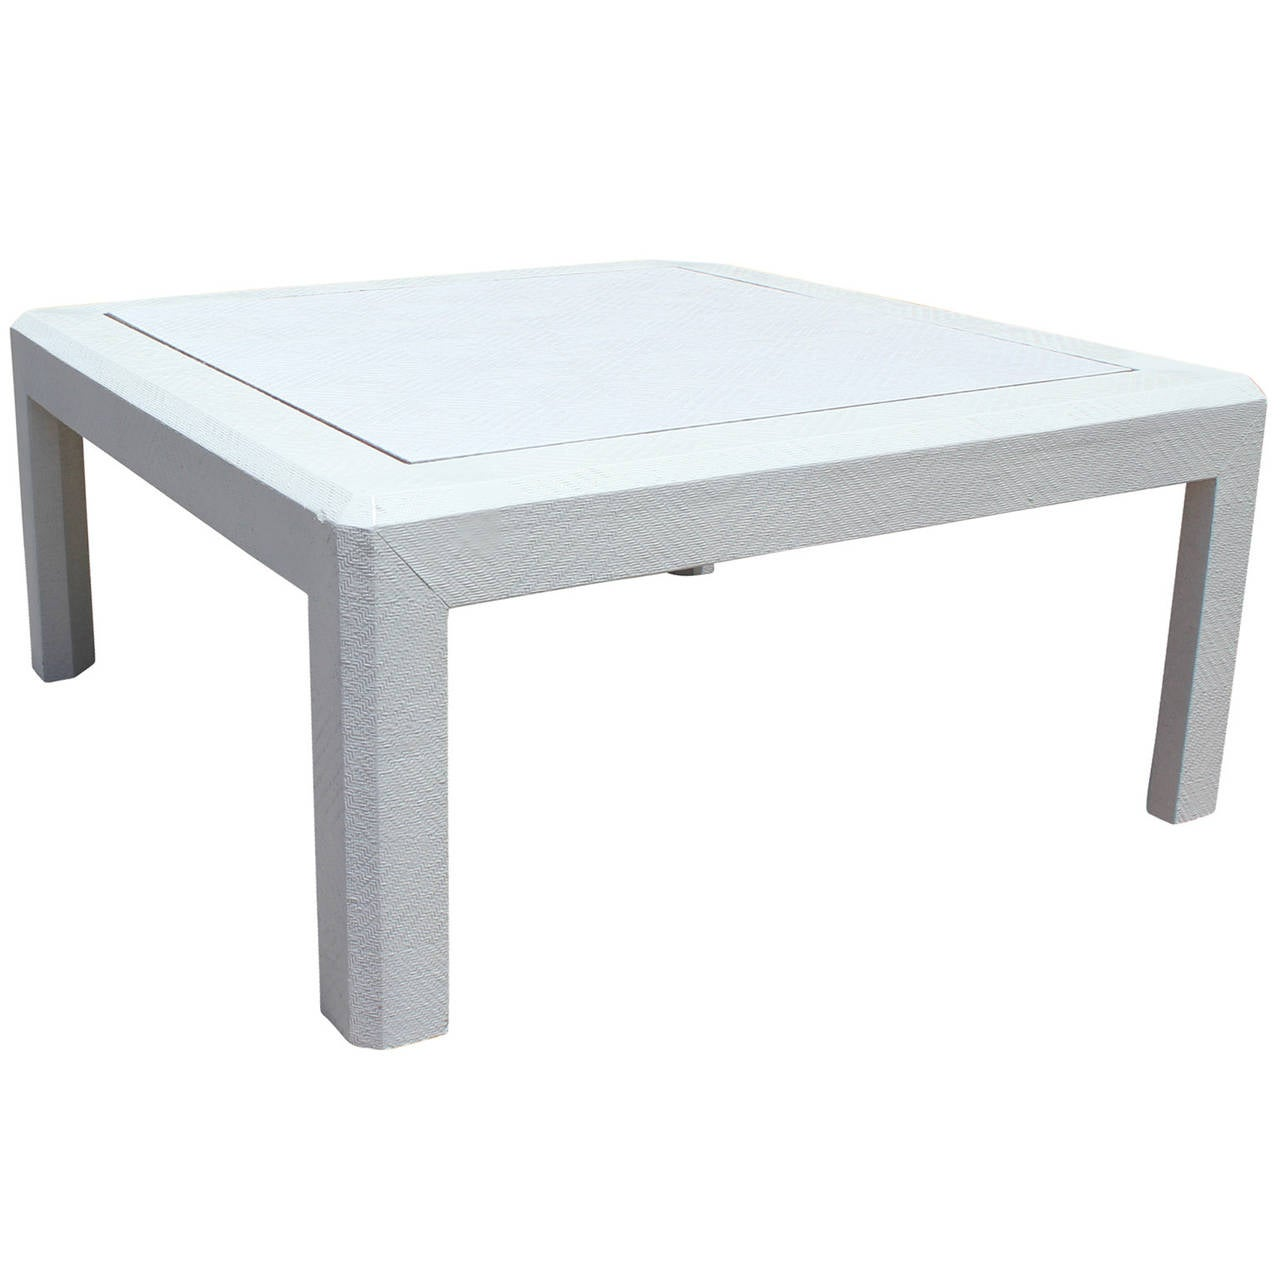 Modern Harrison Van Horn Style Square White Lacquered Raffia Coffee Table At 1stdibs